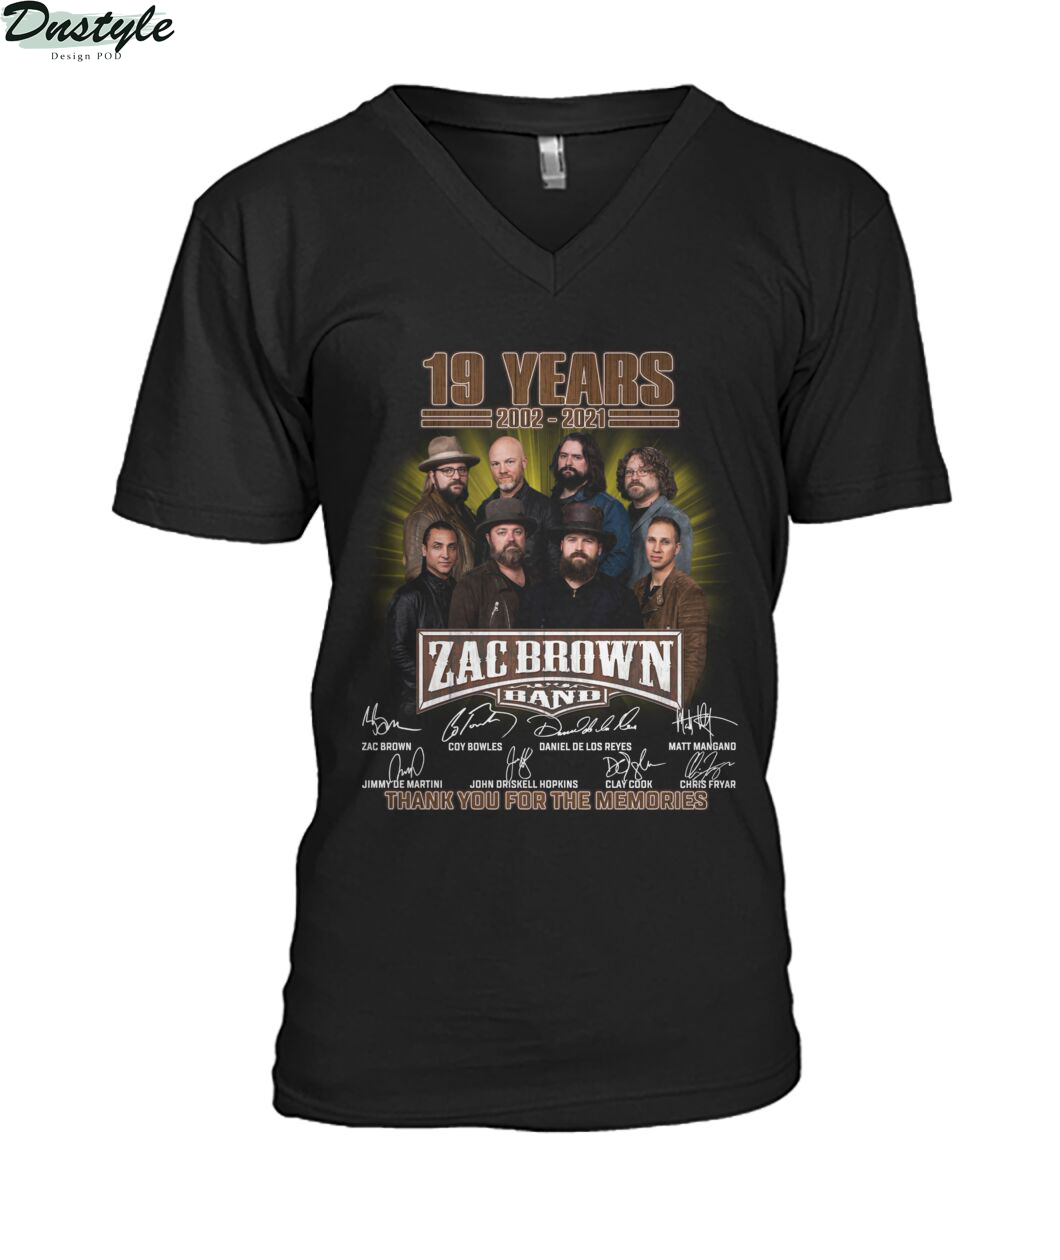 Zac Brown band 19 years 2002 2021 signature thank you for the memories v-neck